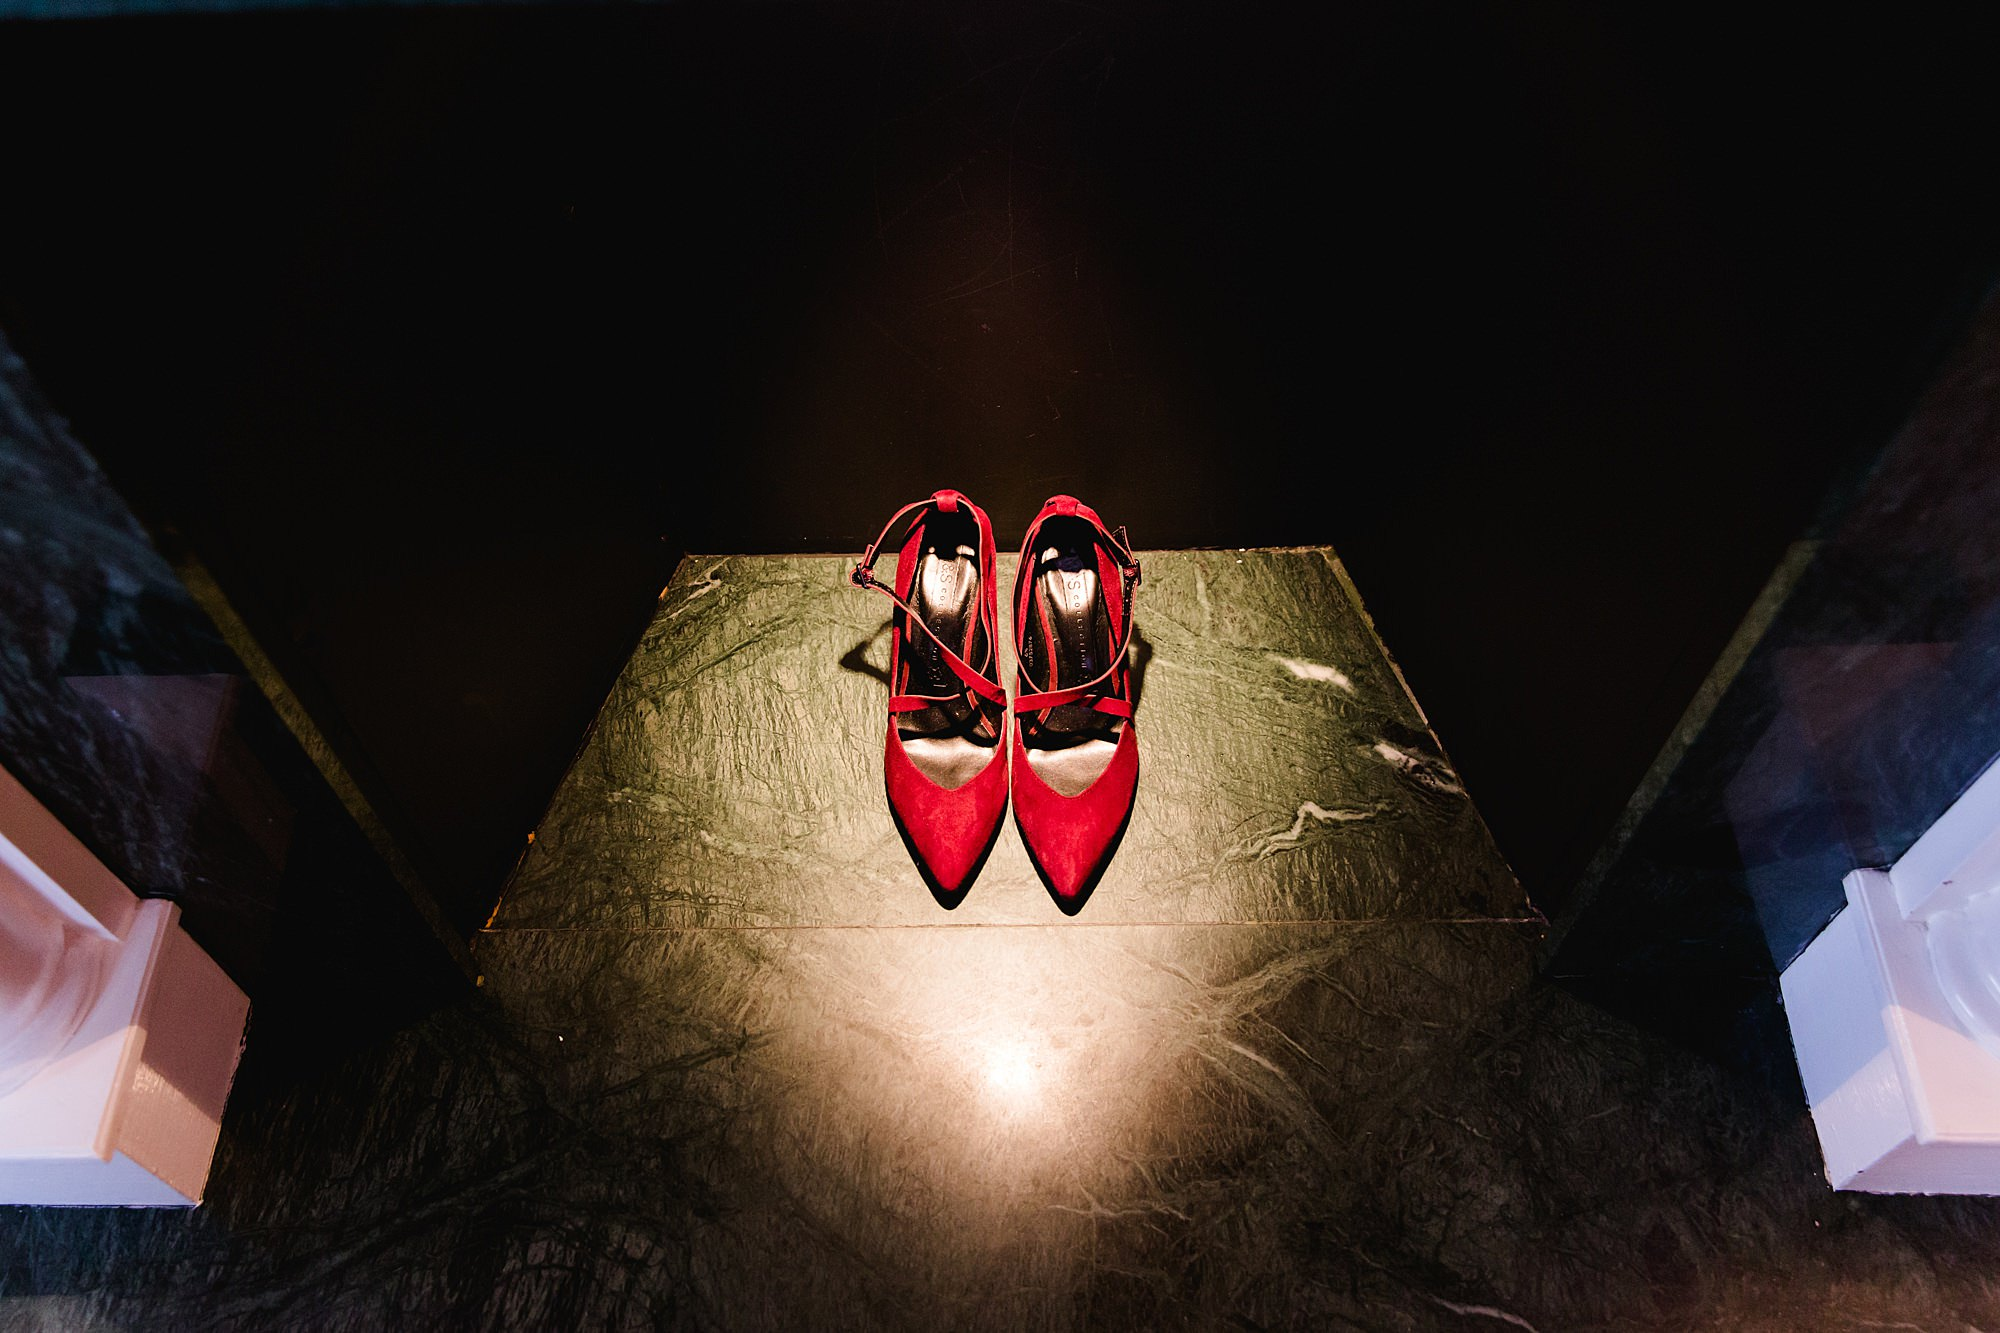 bride's red shoes in spotlight